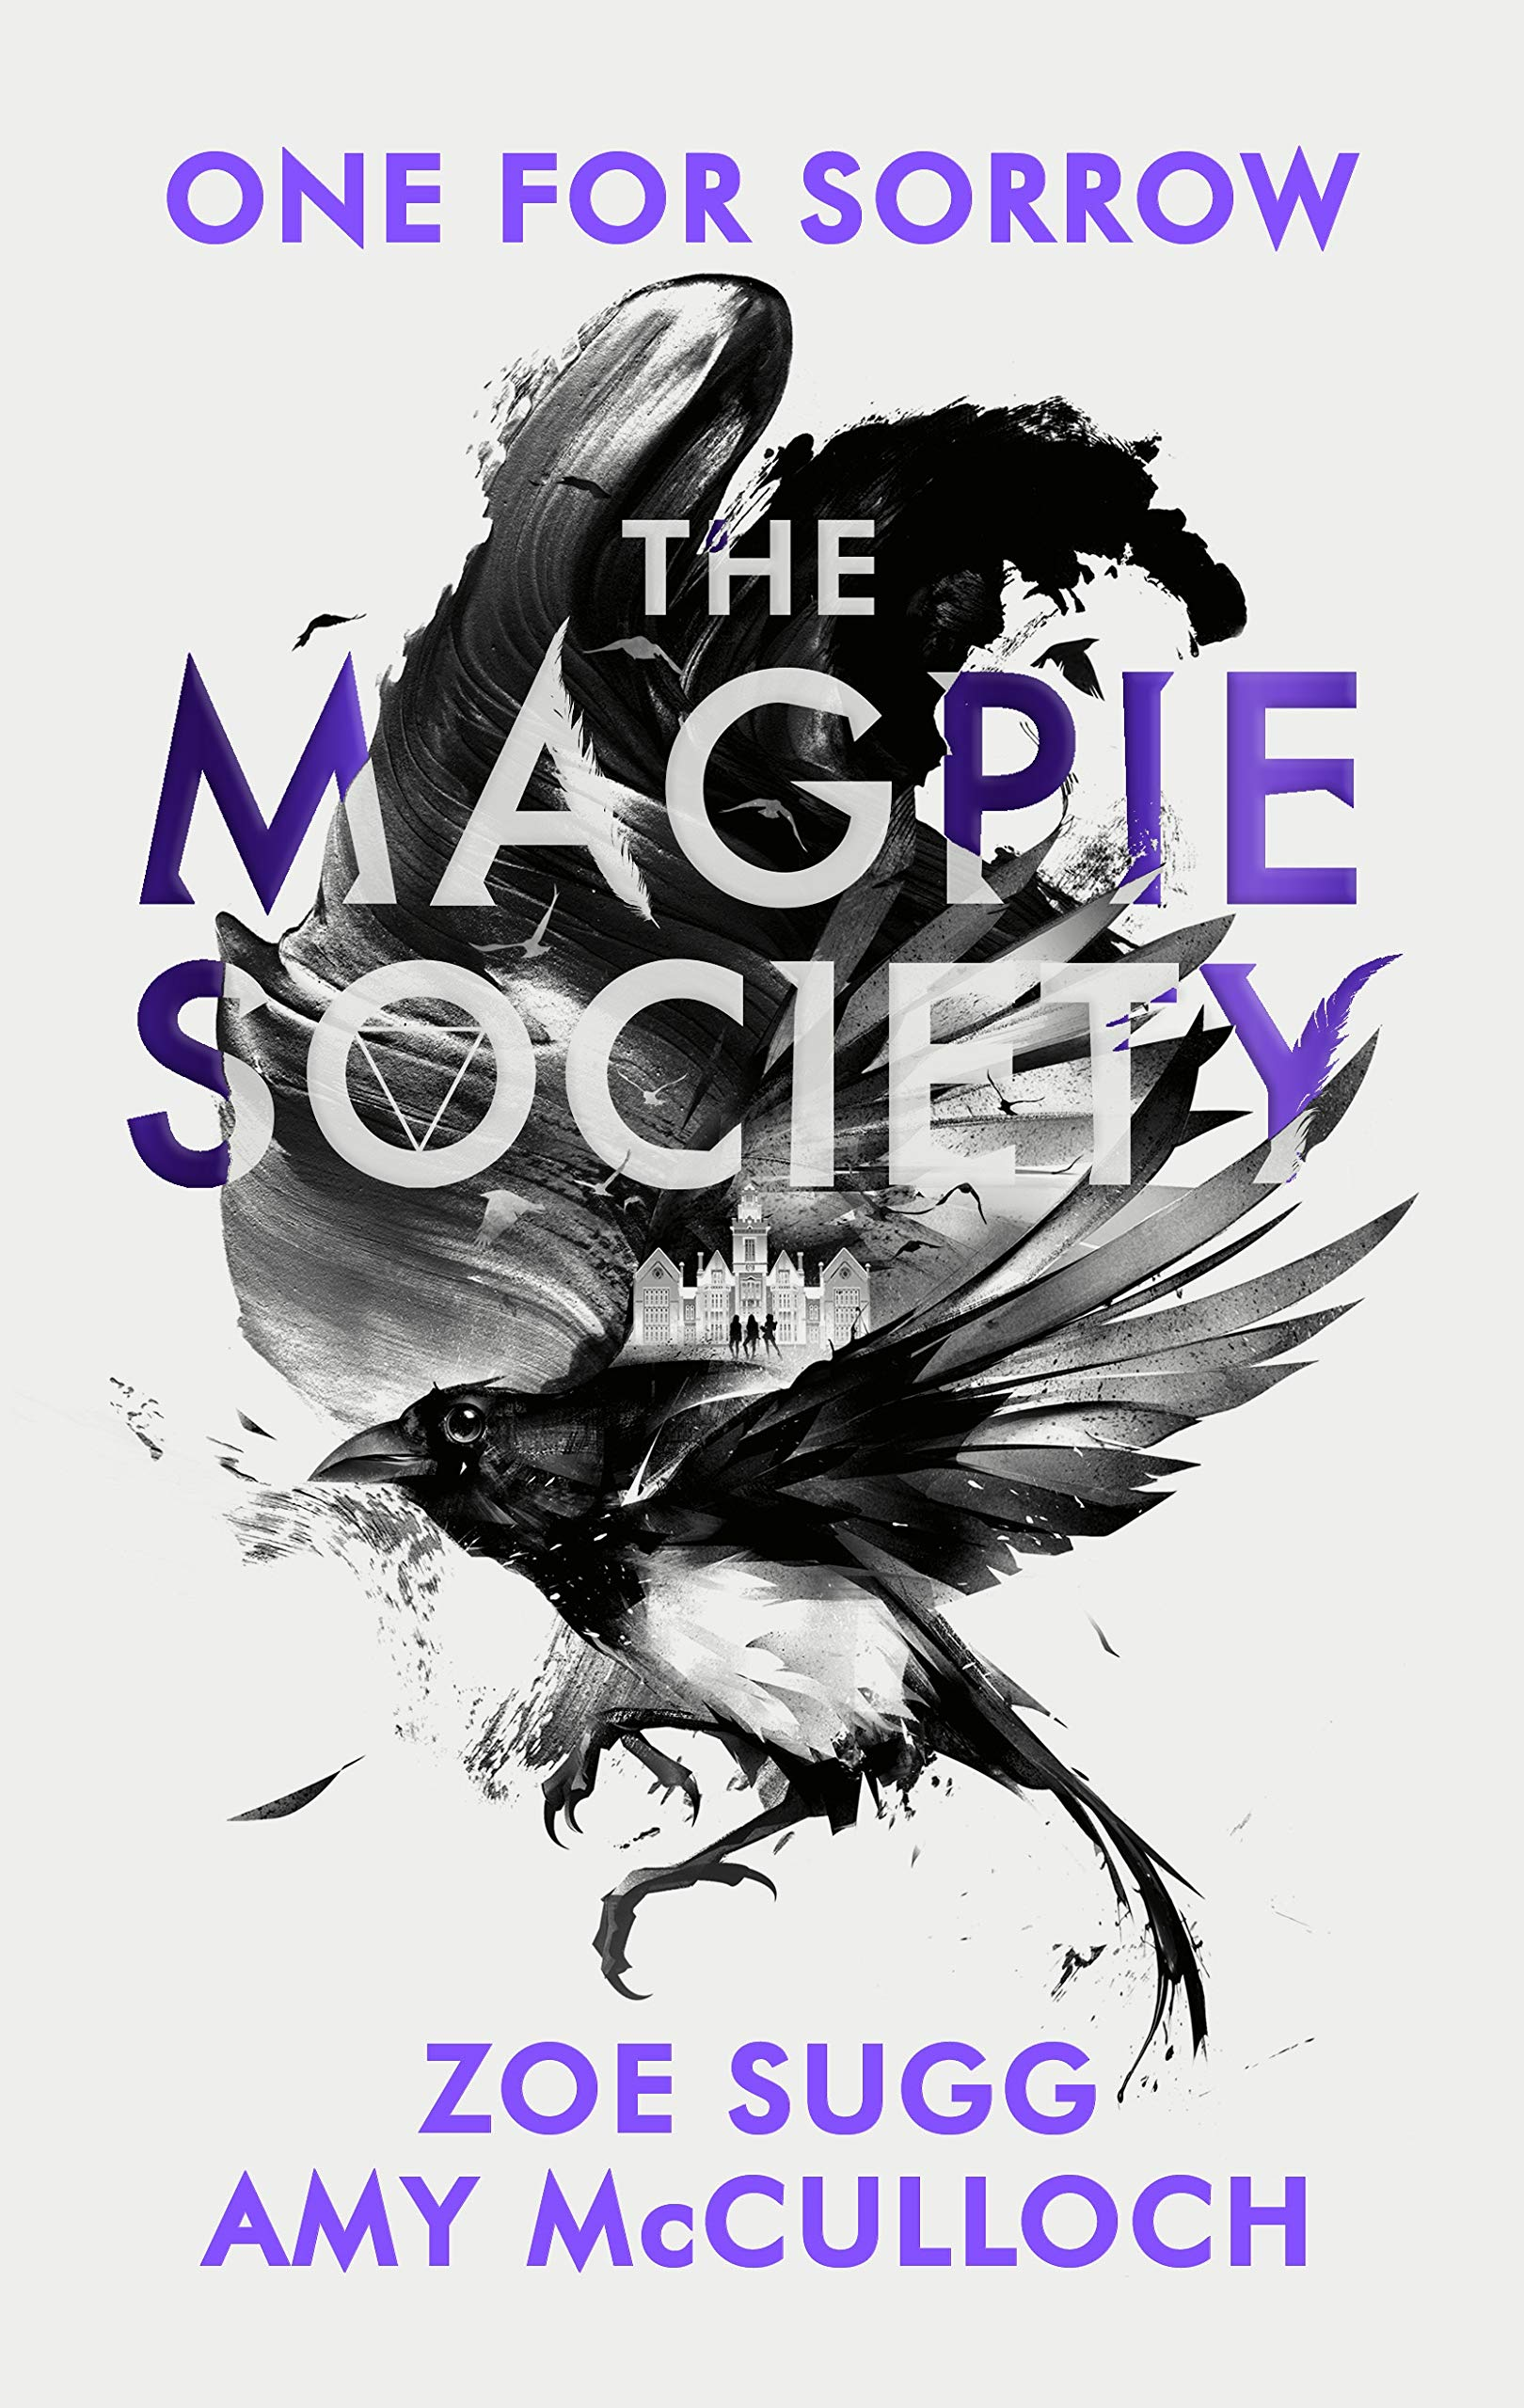 Signed First Edition - One for Sorrow - The Magpie Society